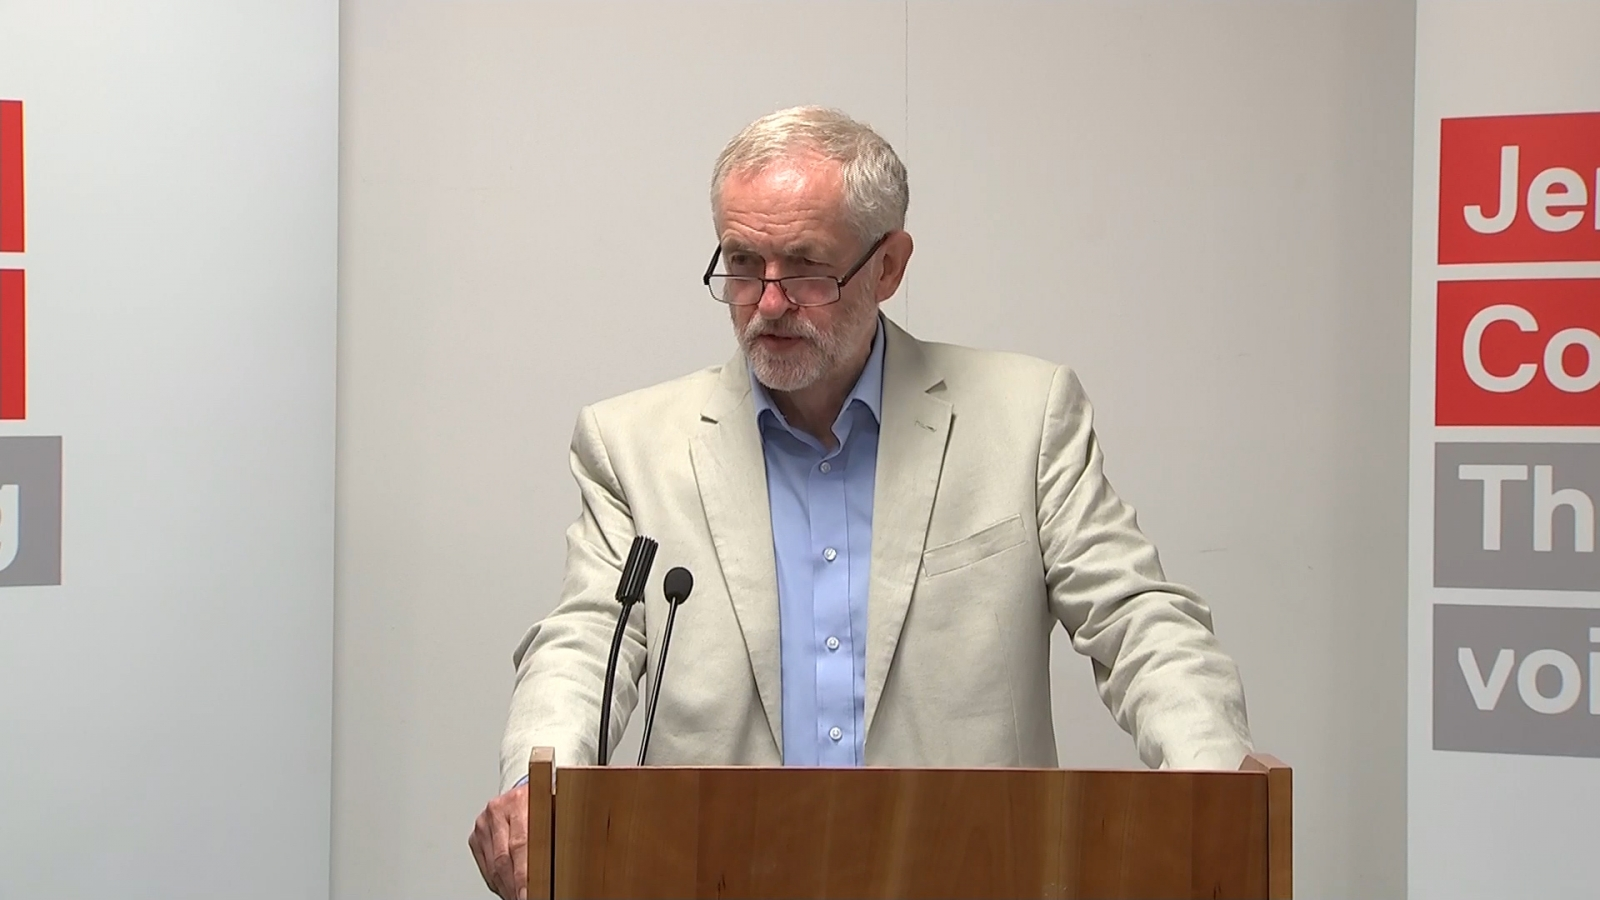 Jeremy Corbyn annoyed by train questions